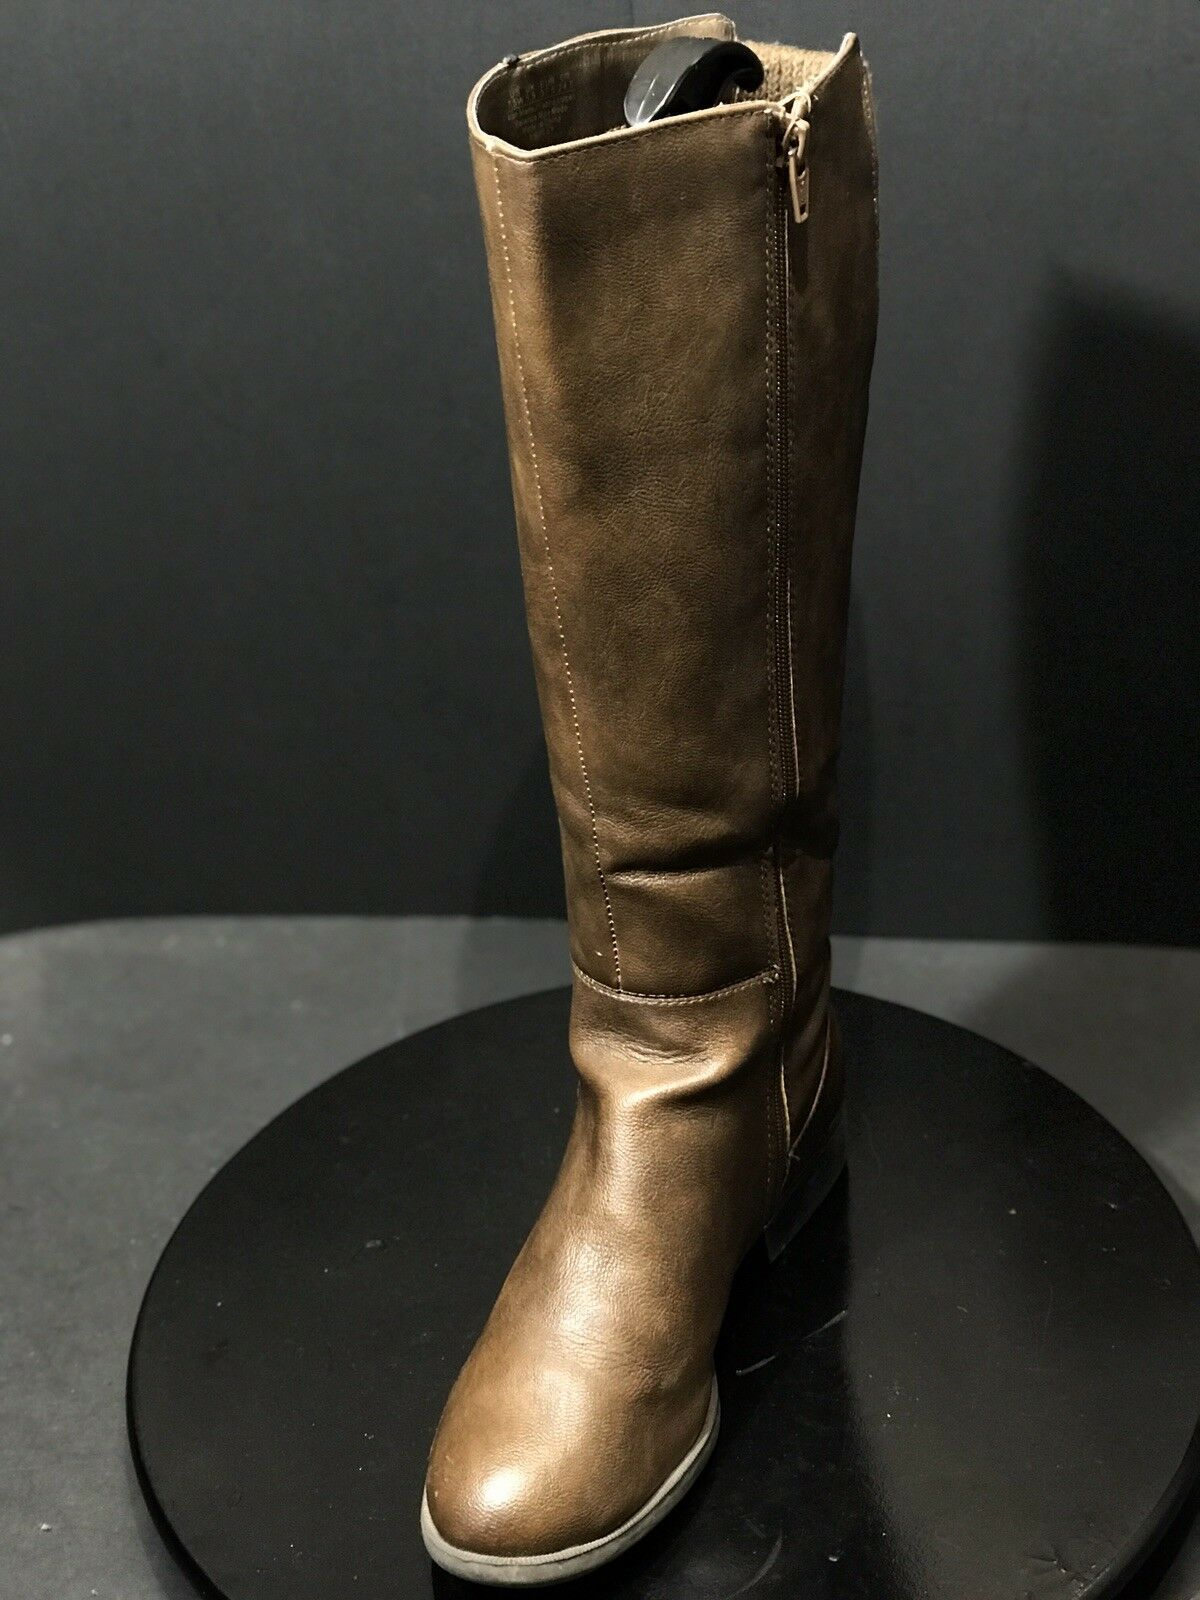 Life Stride Women's Xripley Manmade Riding Boot Dark Tan Size 7.5 W US   UK 5.5